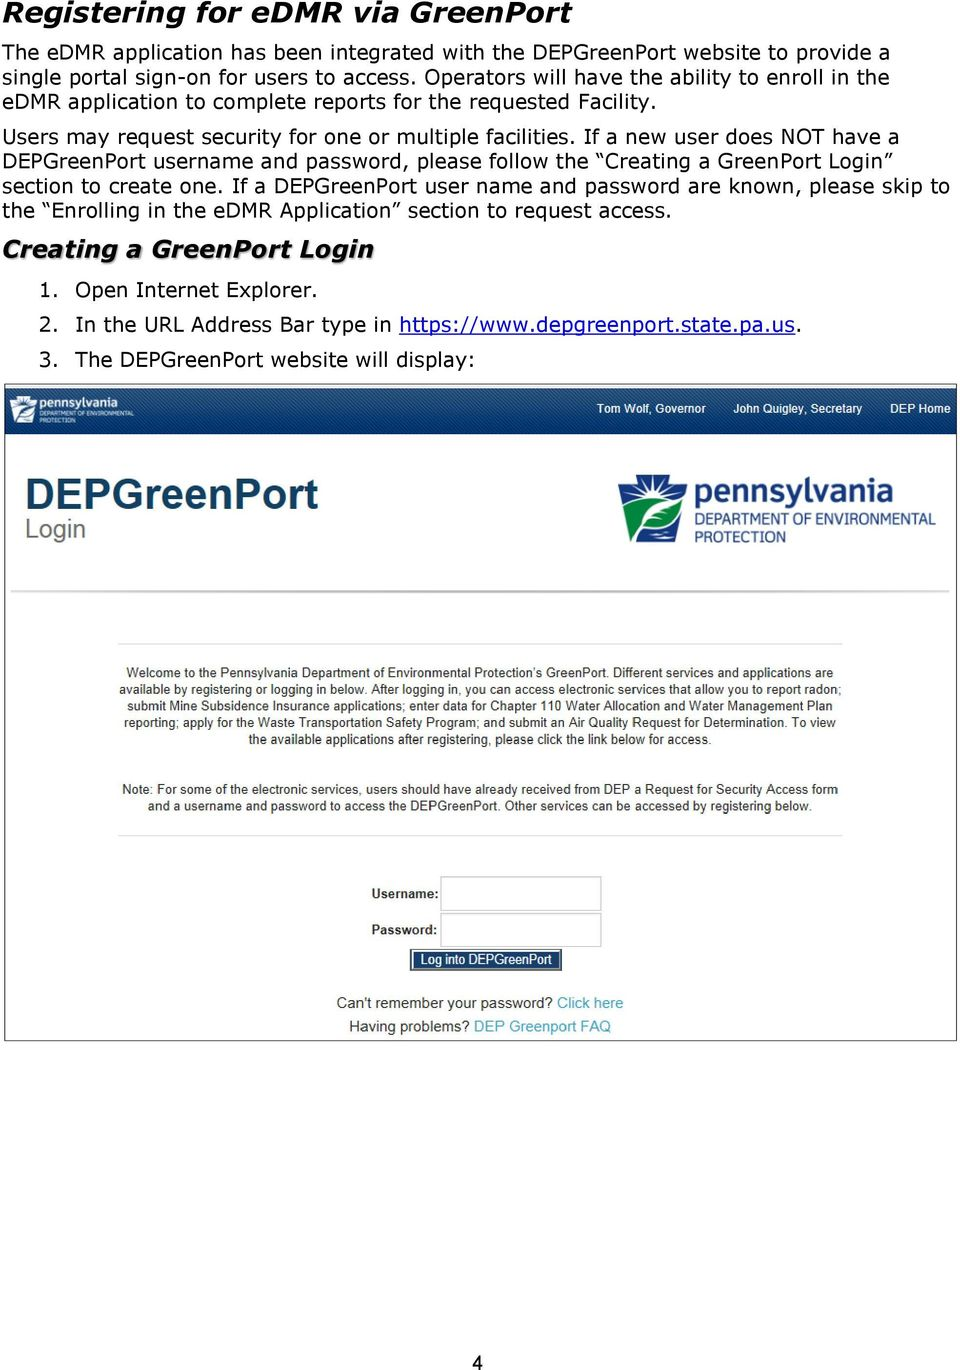 If a new user does NOT have a DEPGreenPort username and password, please follow the Creating a GreenPort Login section to create one.